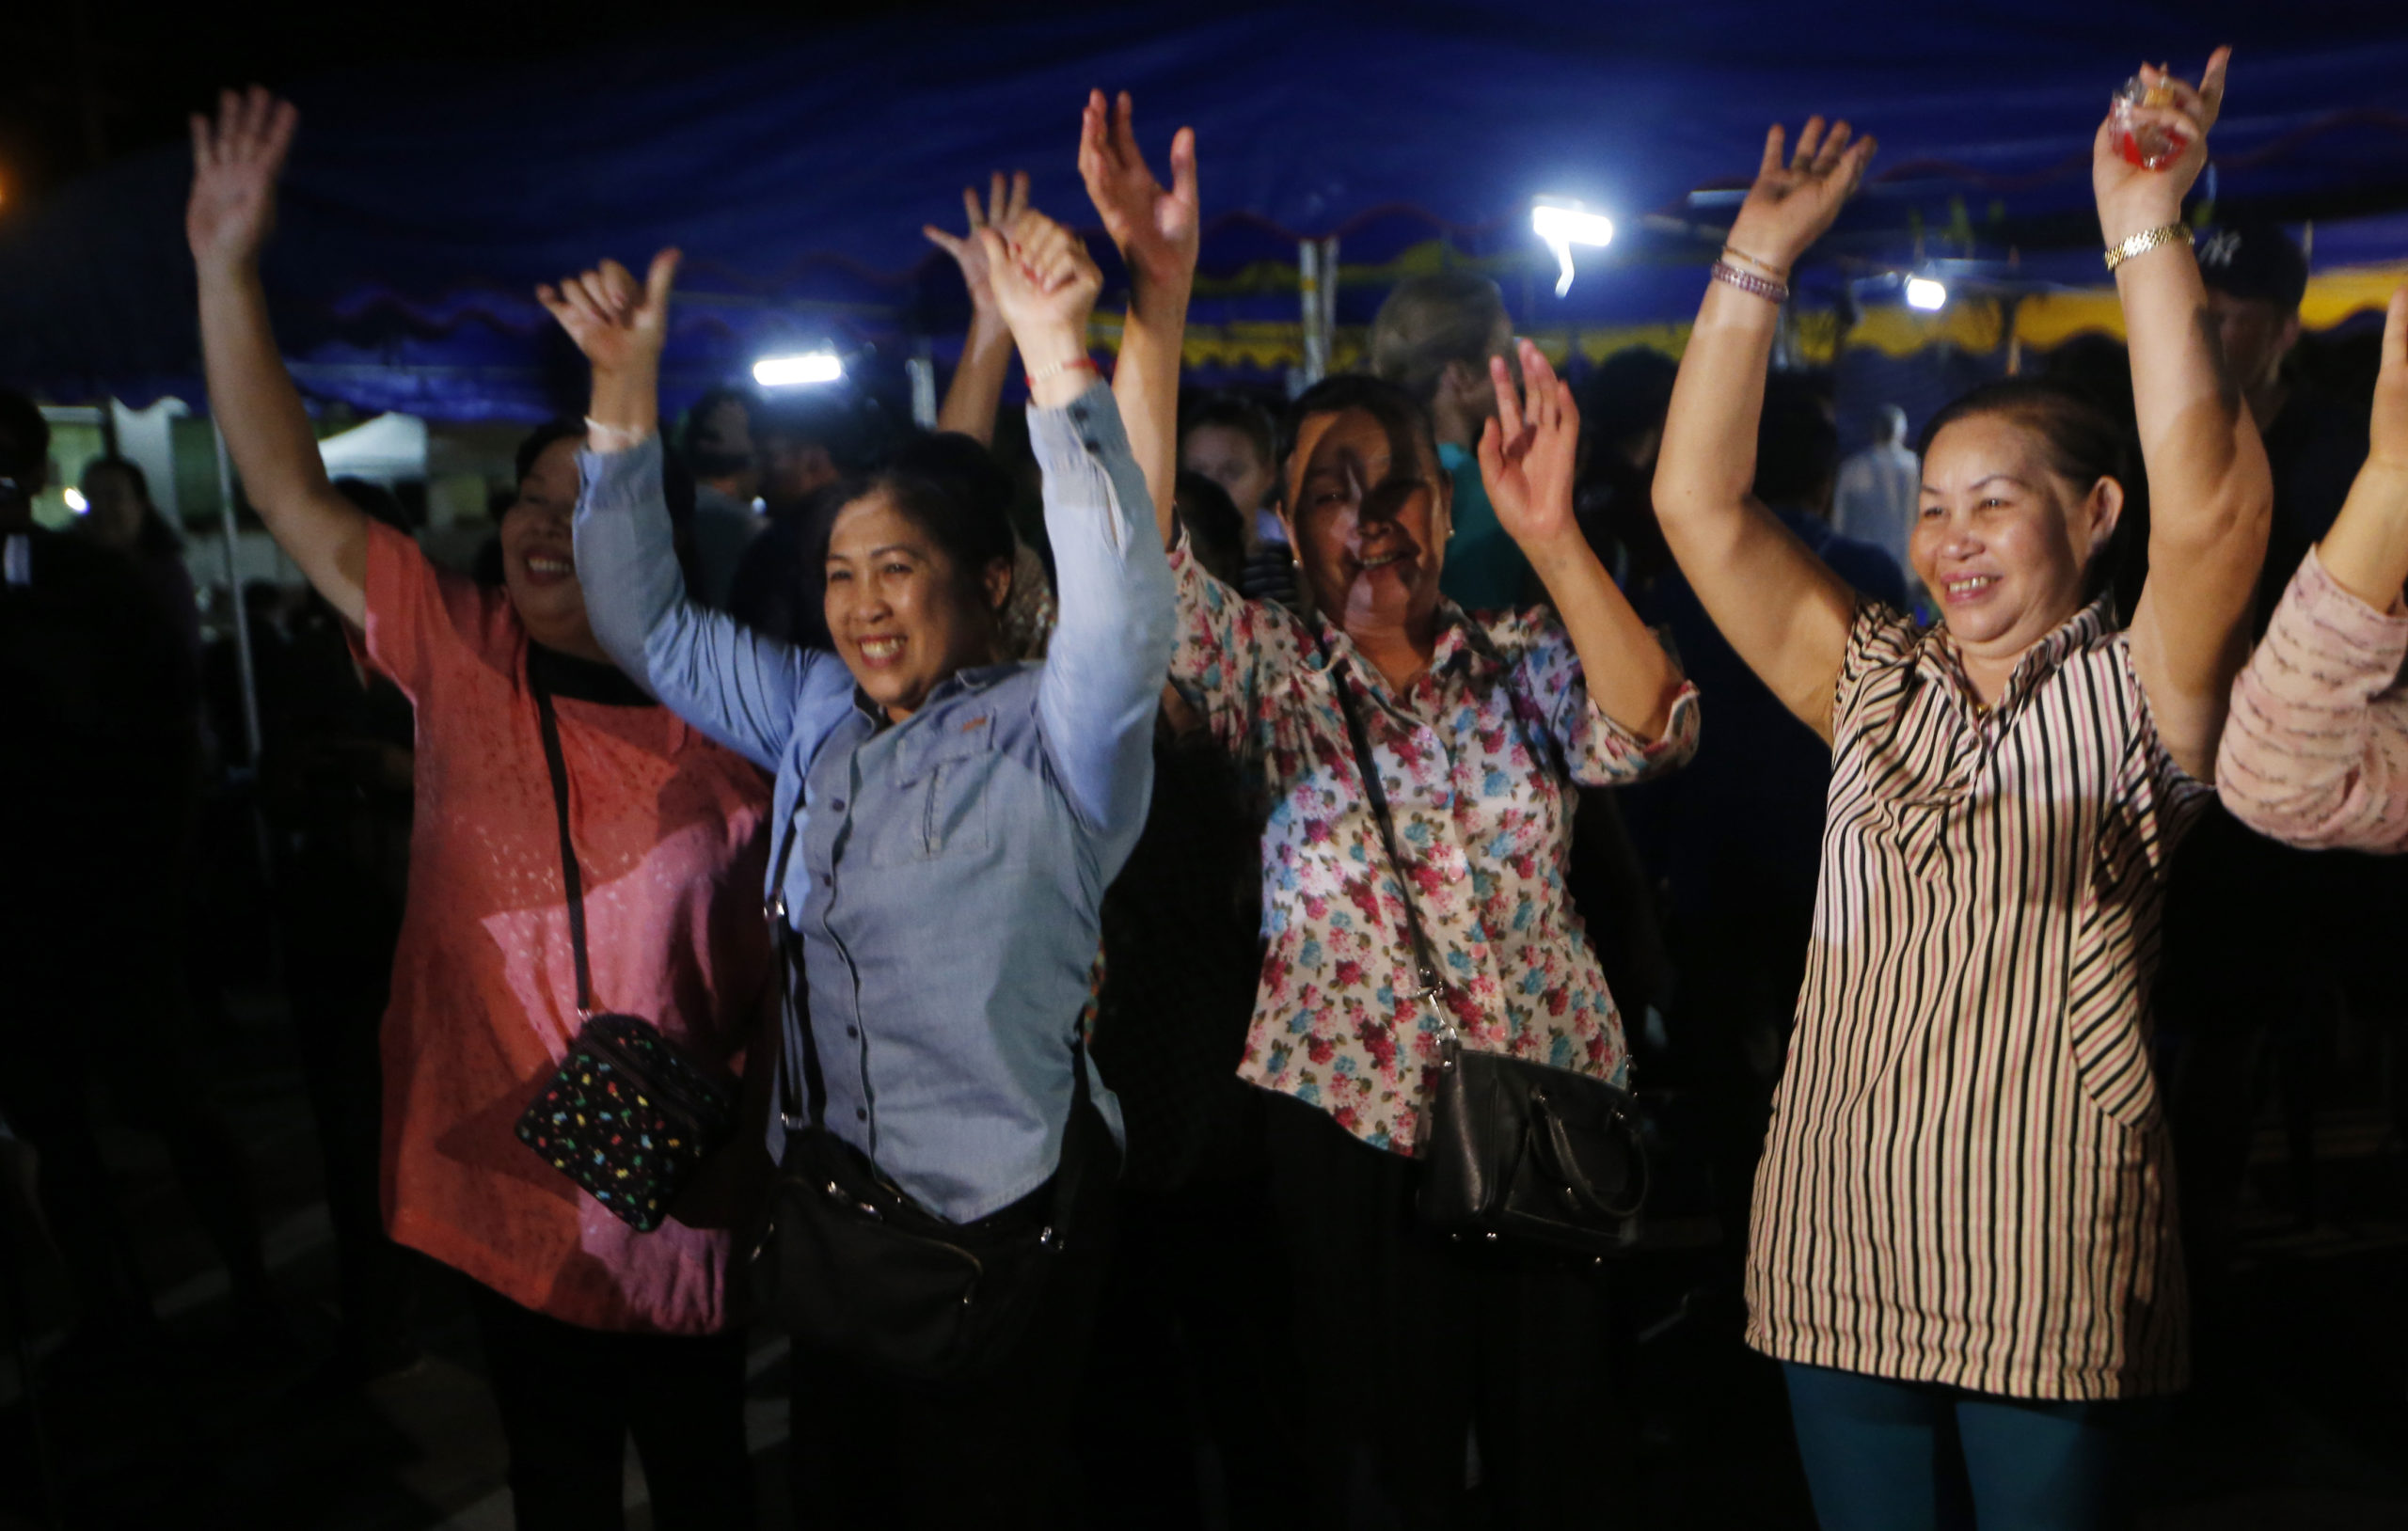 Photo of people celebrating the rescue of some of the boys from the Thai soccer team